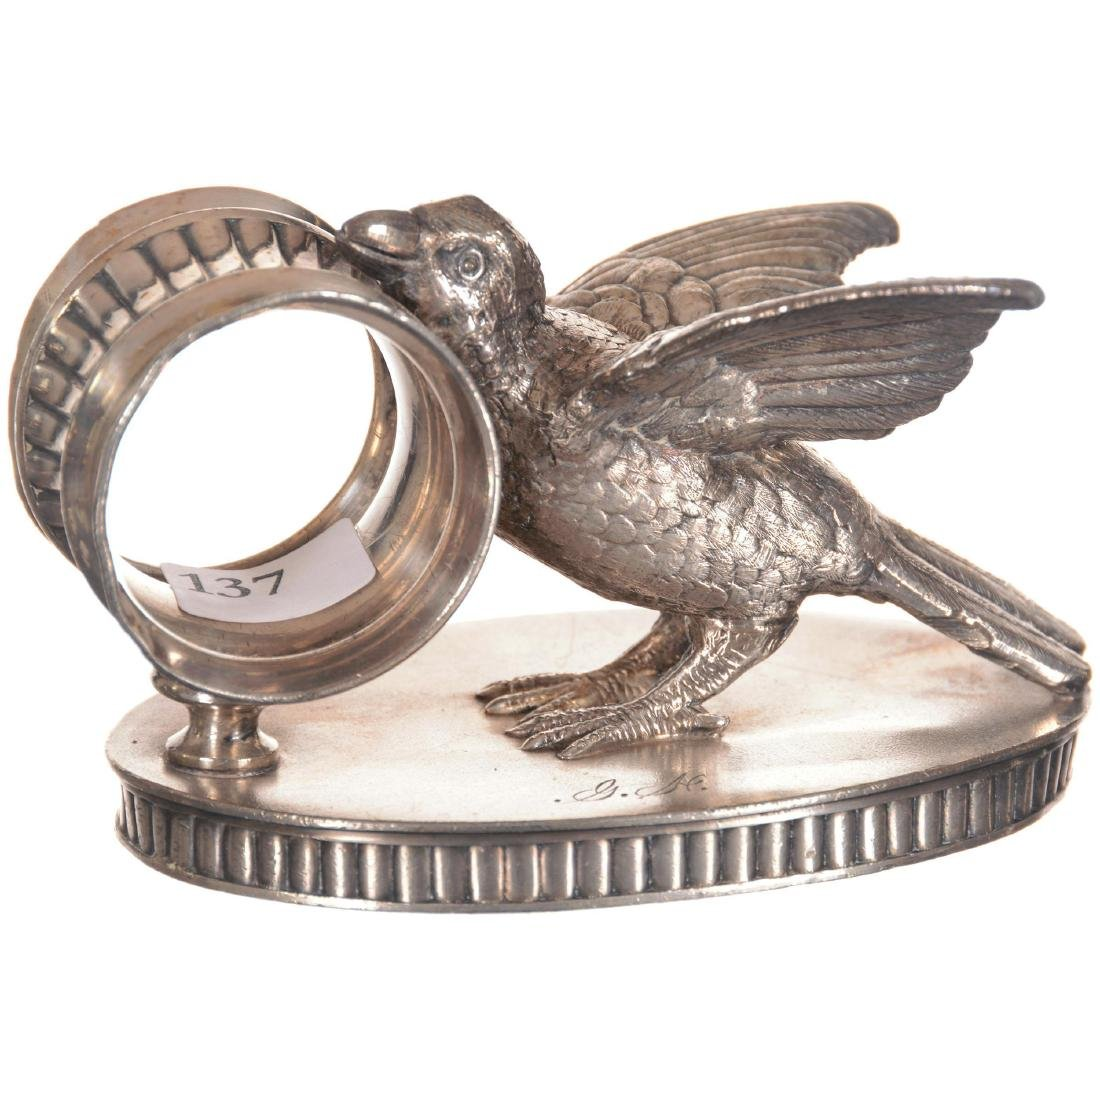 Figural Bird Silver-plate Napkin Ring